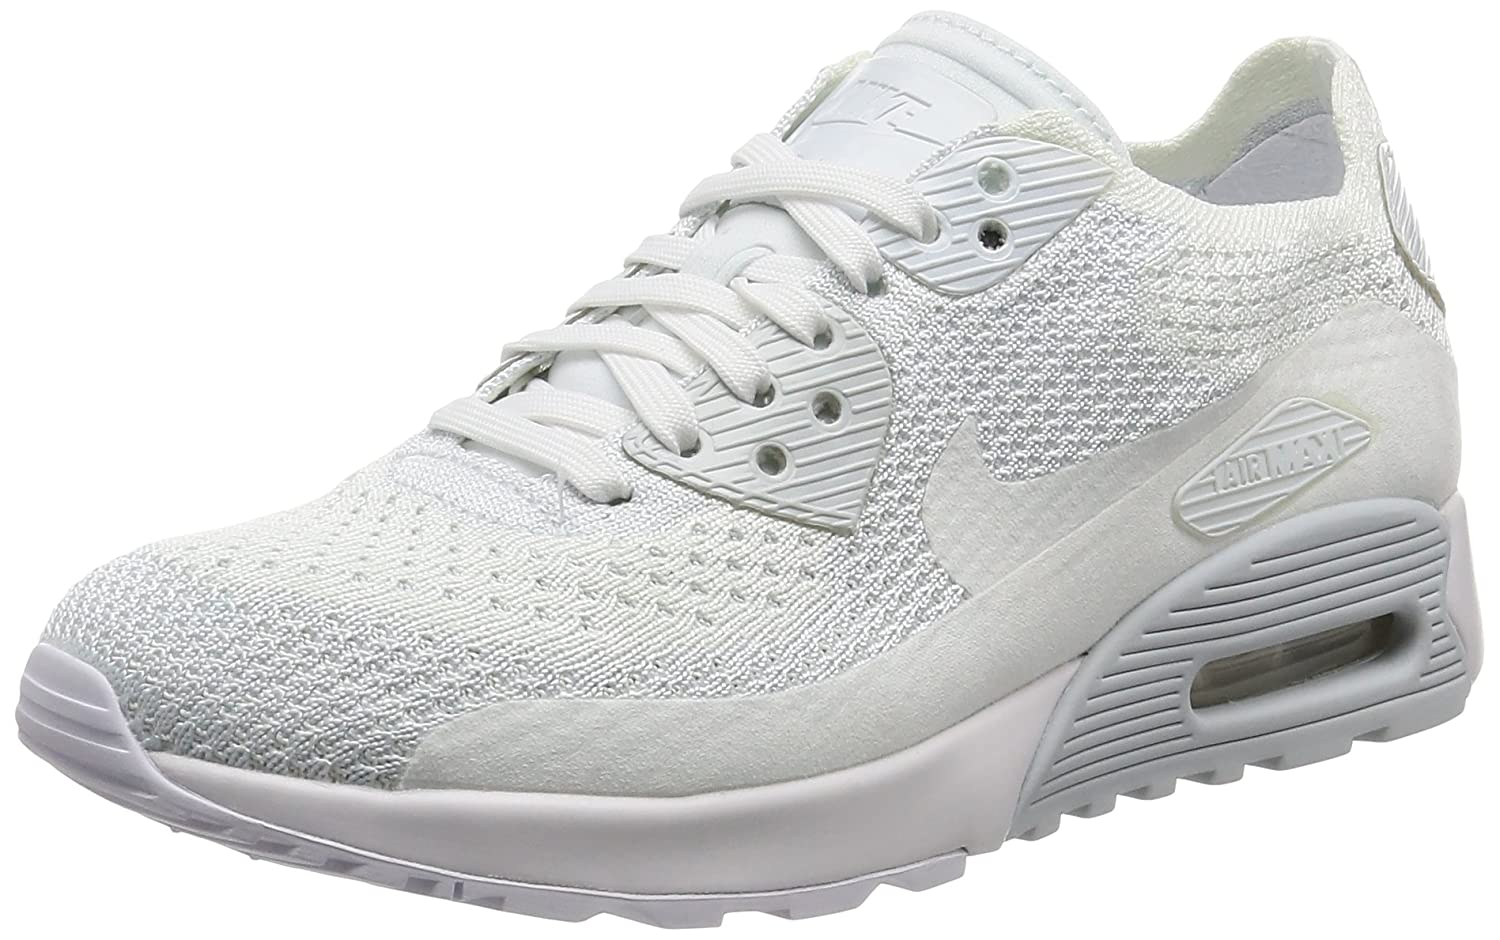 56b21ff2f74b7 Womens AIR MAX 90 ULTRA 2.0 FLYKNIT Running Trainers  NIKE  Amazon.co.uk   Shoes   Bags